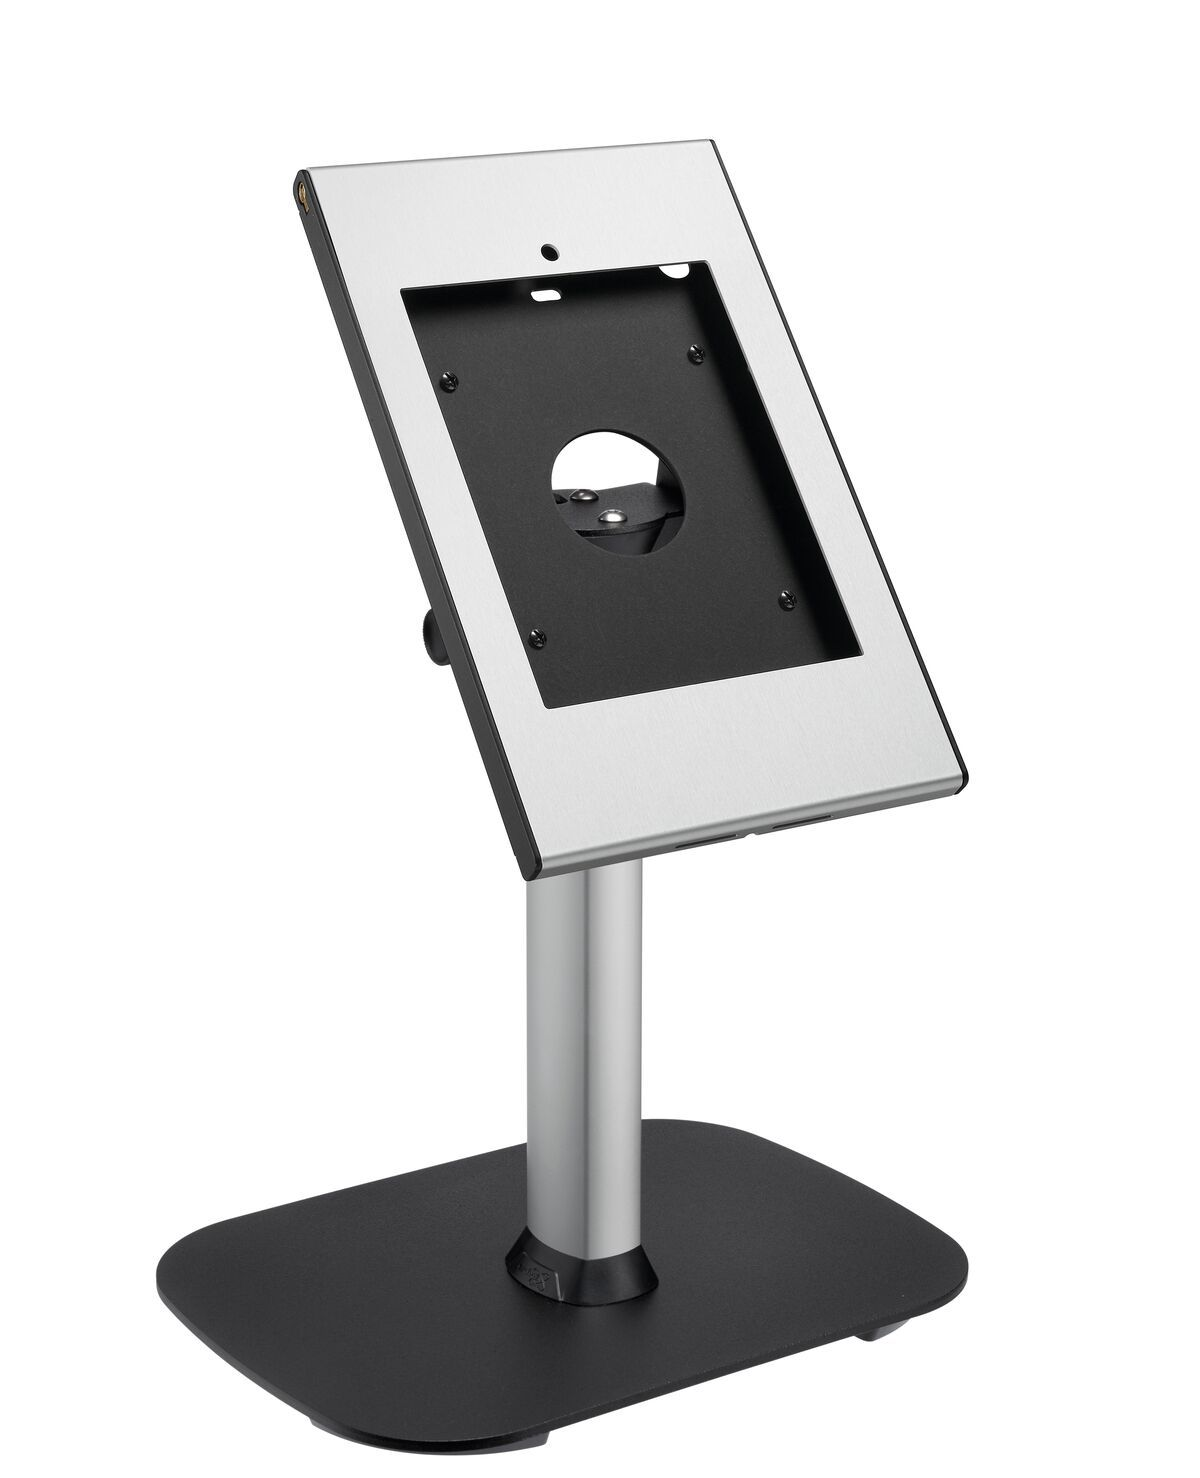 Vogel's PTS 1226 TabLock for iPad mini (2019) - Application